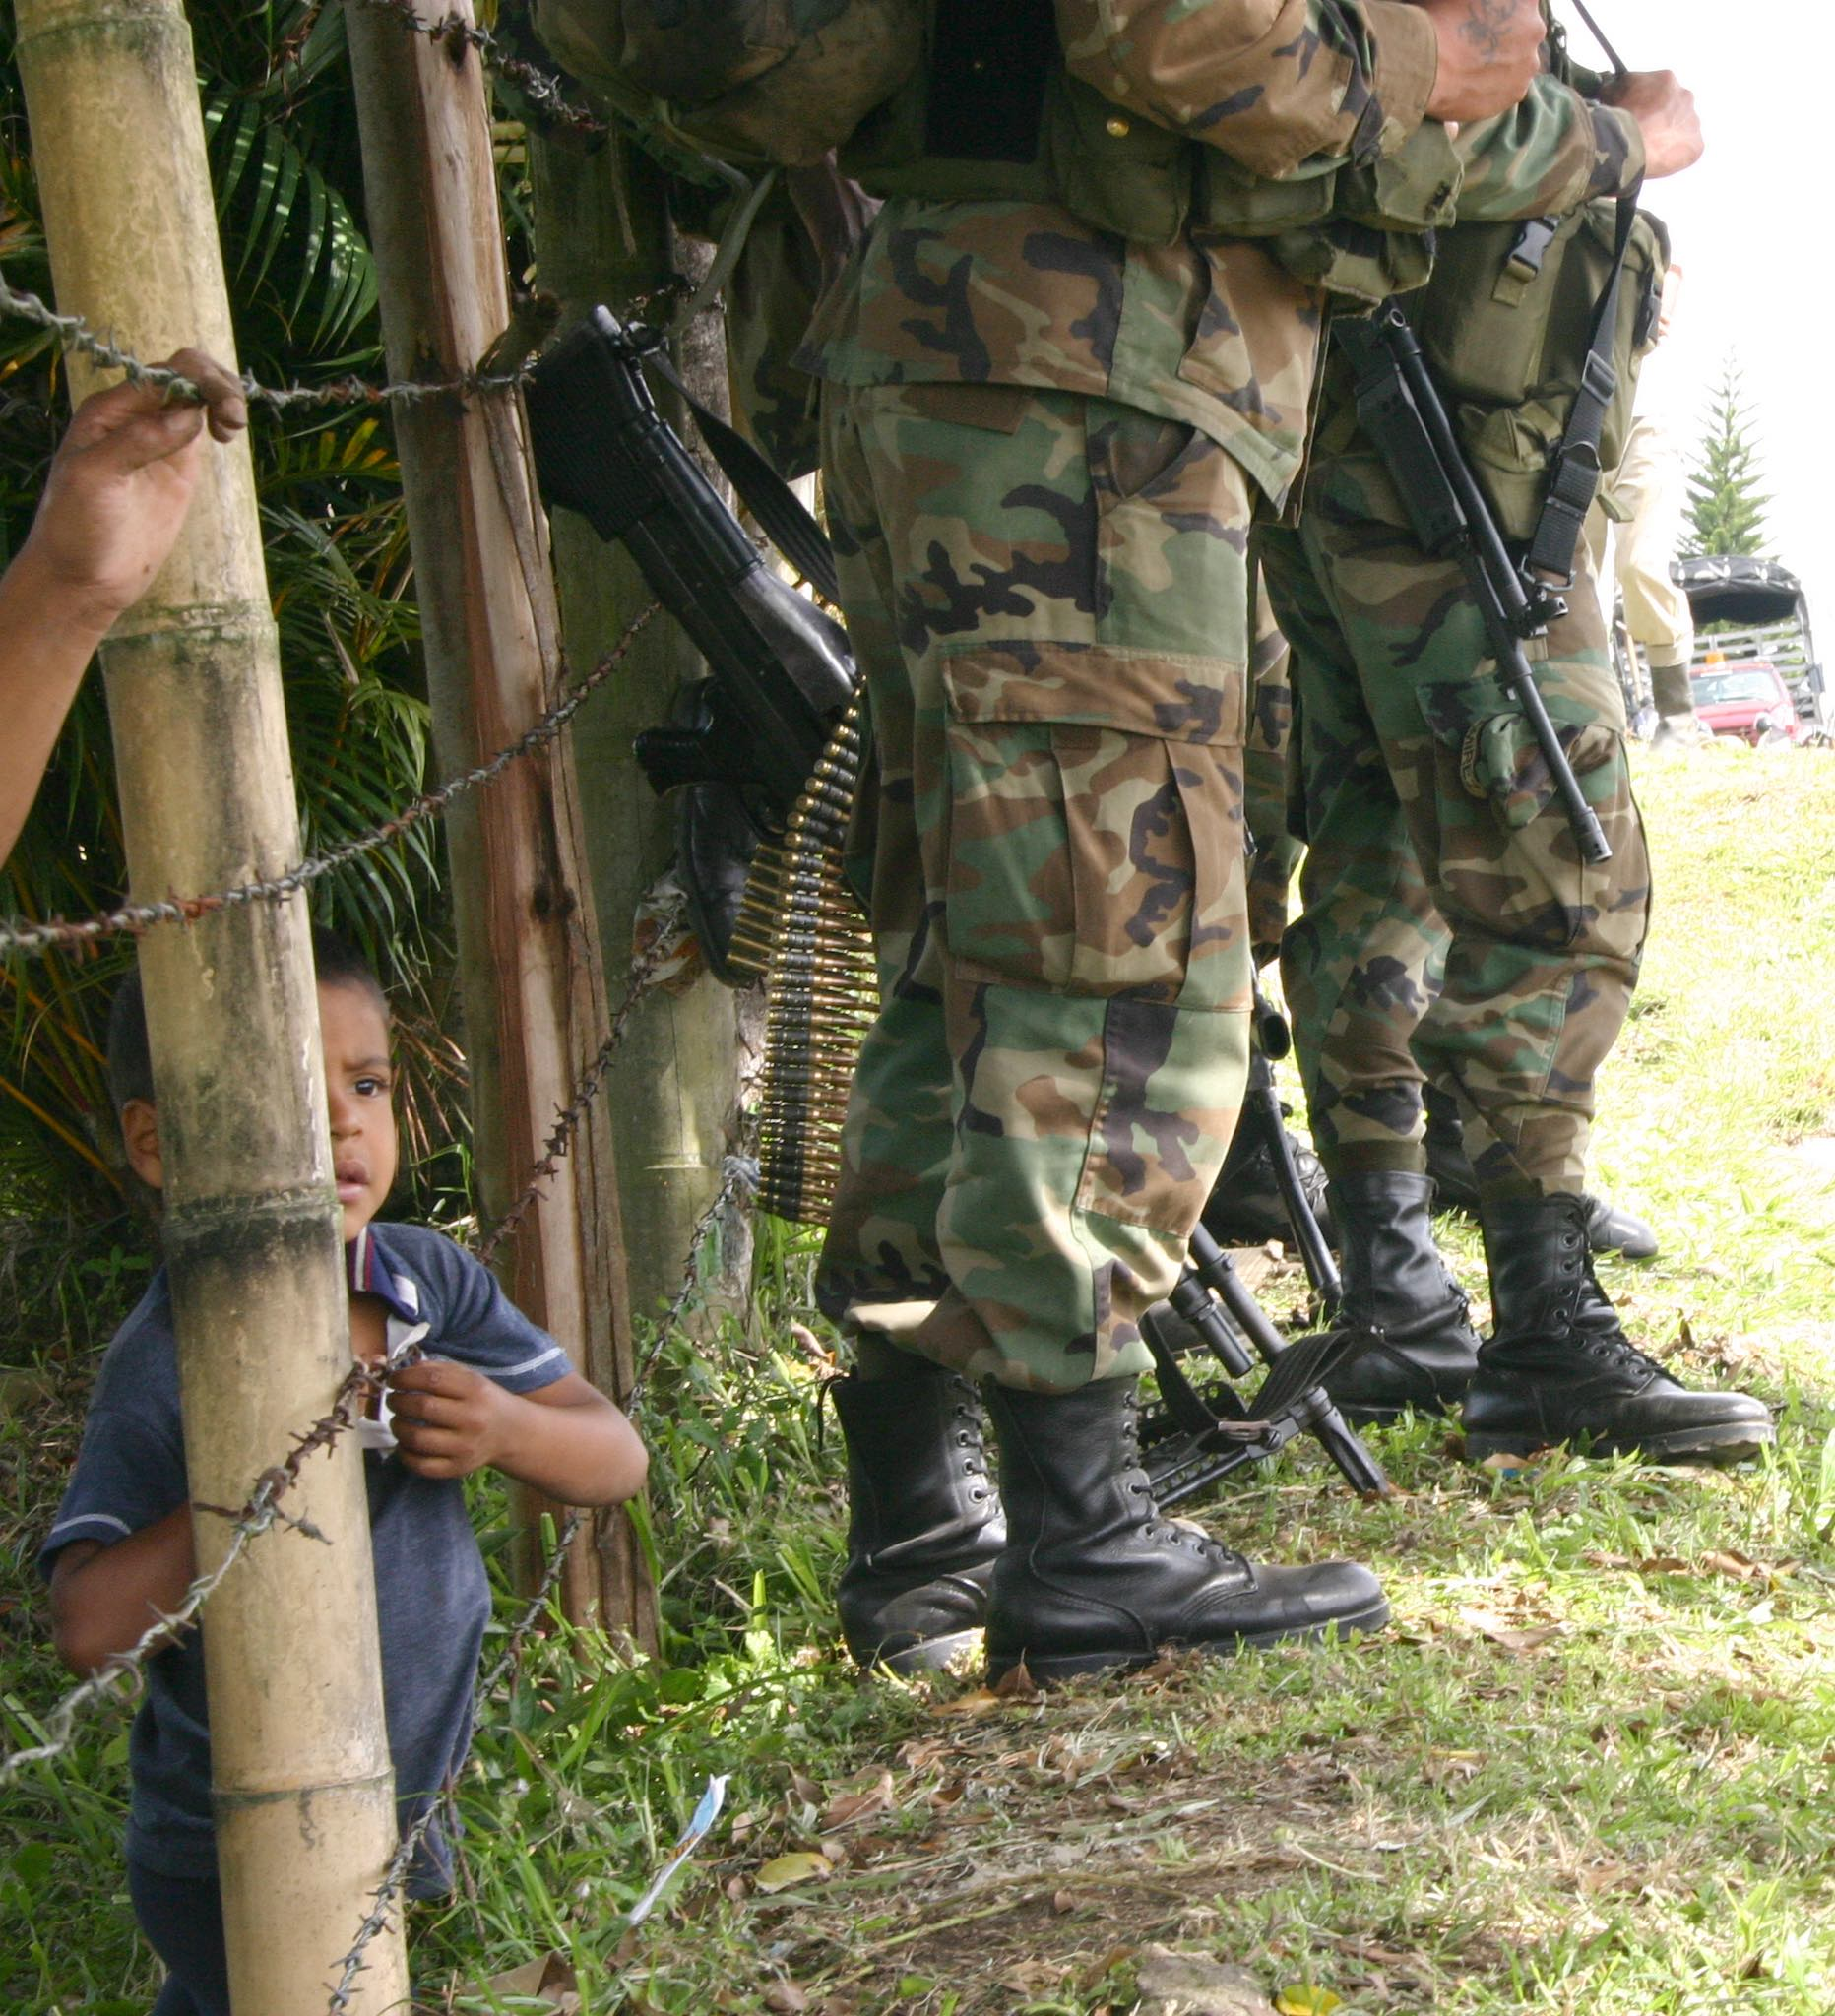 Colombian child and soldiers